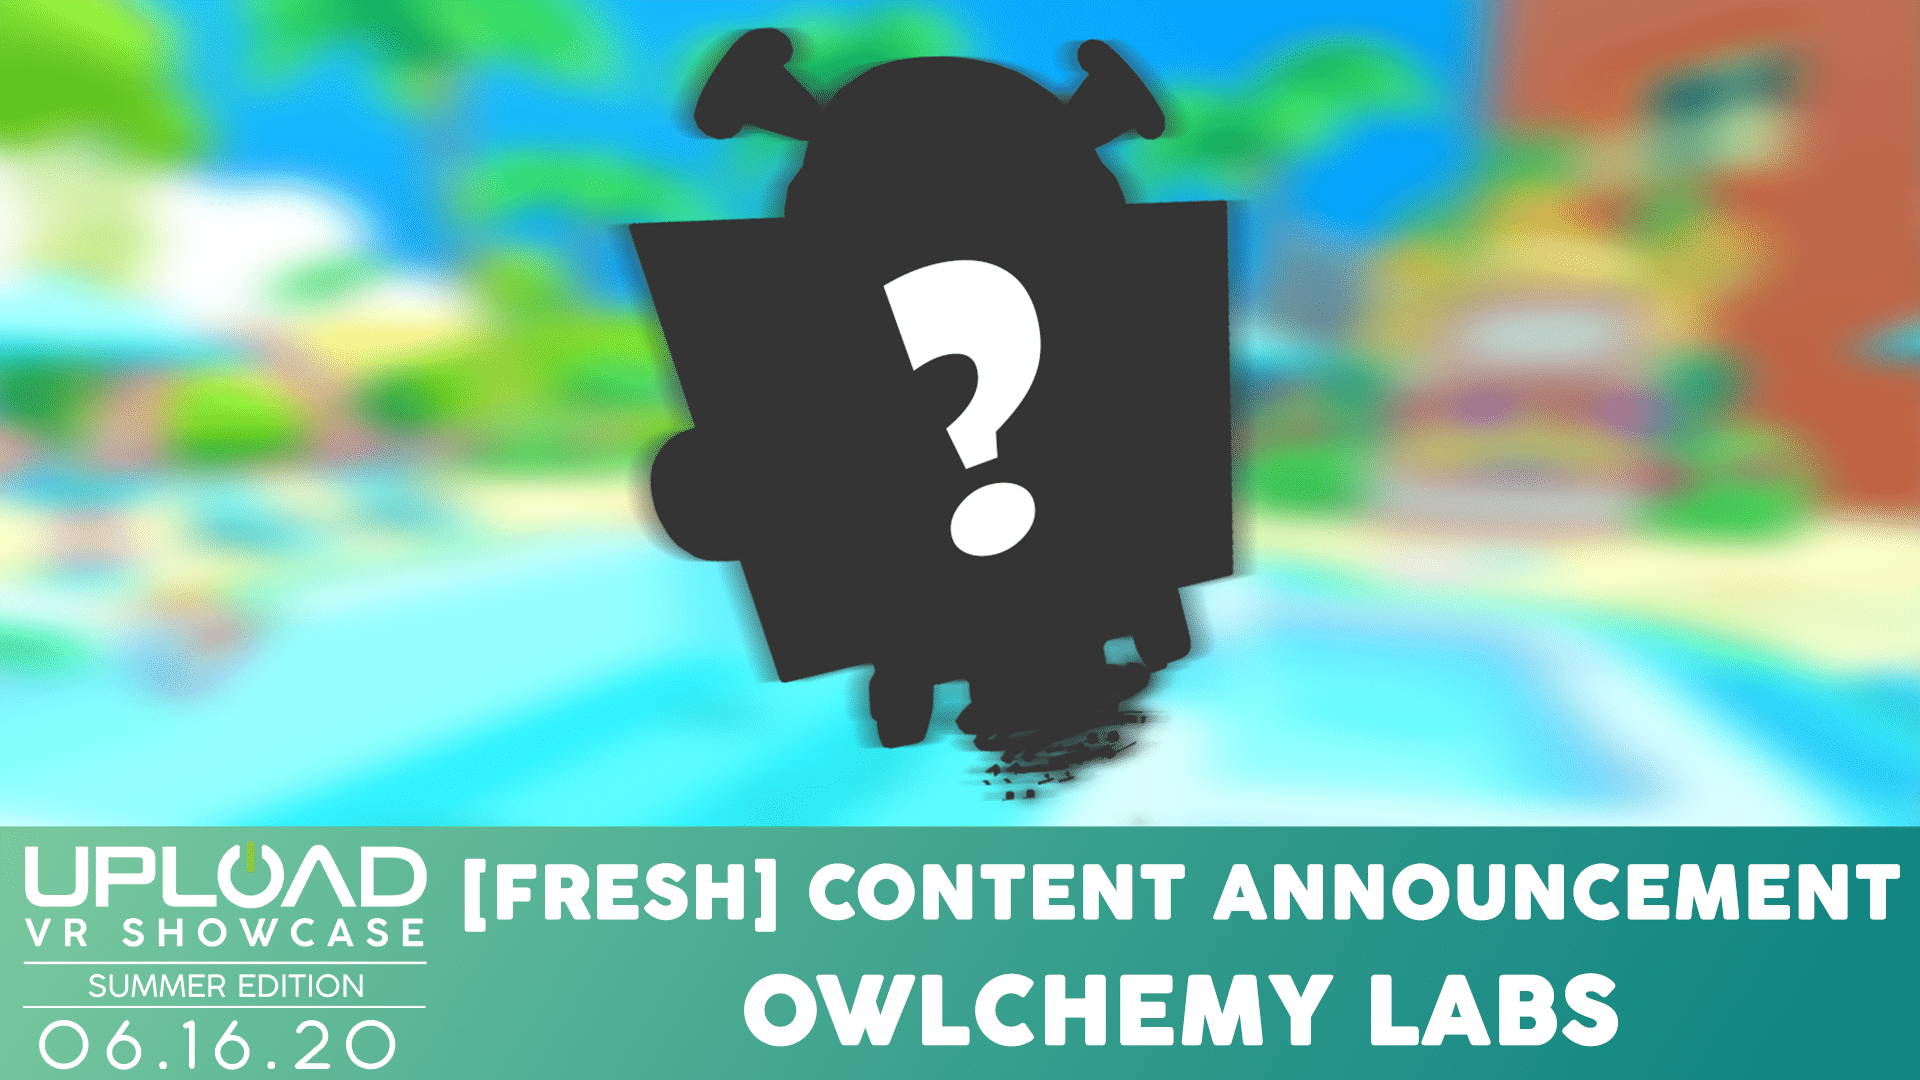 Prepare For A [FRESH] Content Reveal From Owlchemy Labs At The Upload VR Showcase: Summer Edition Tomorrow!